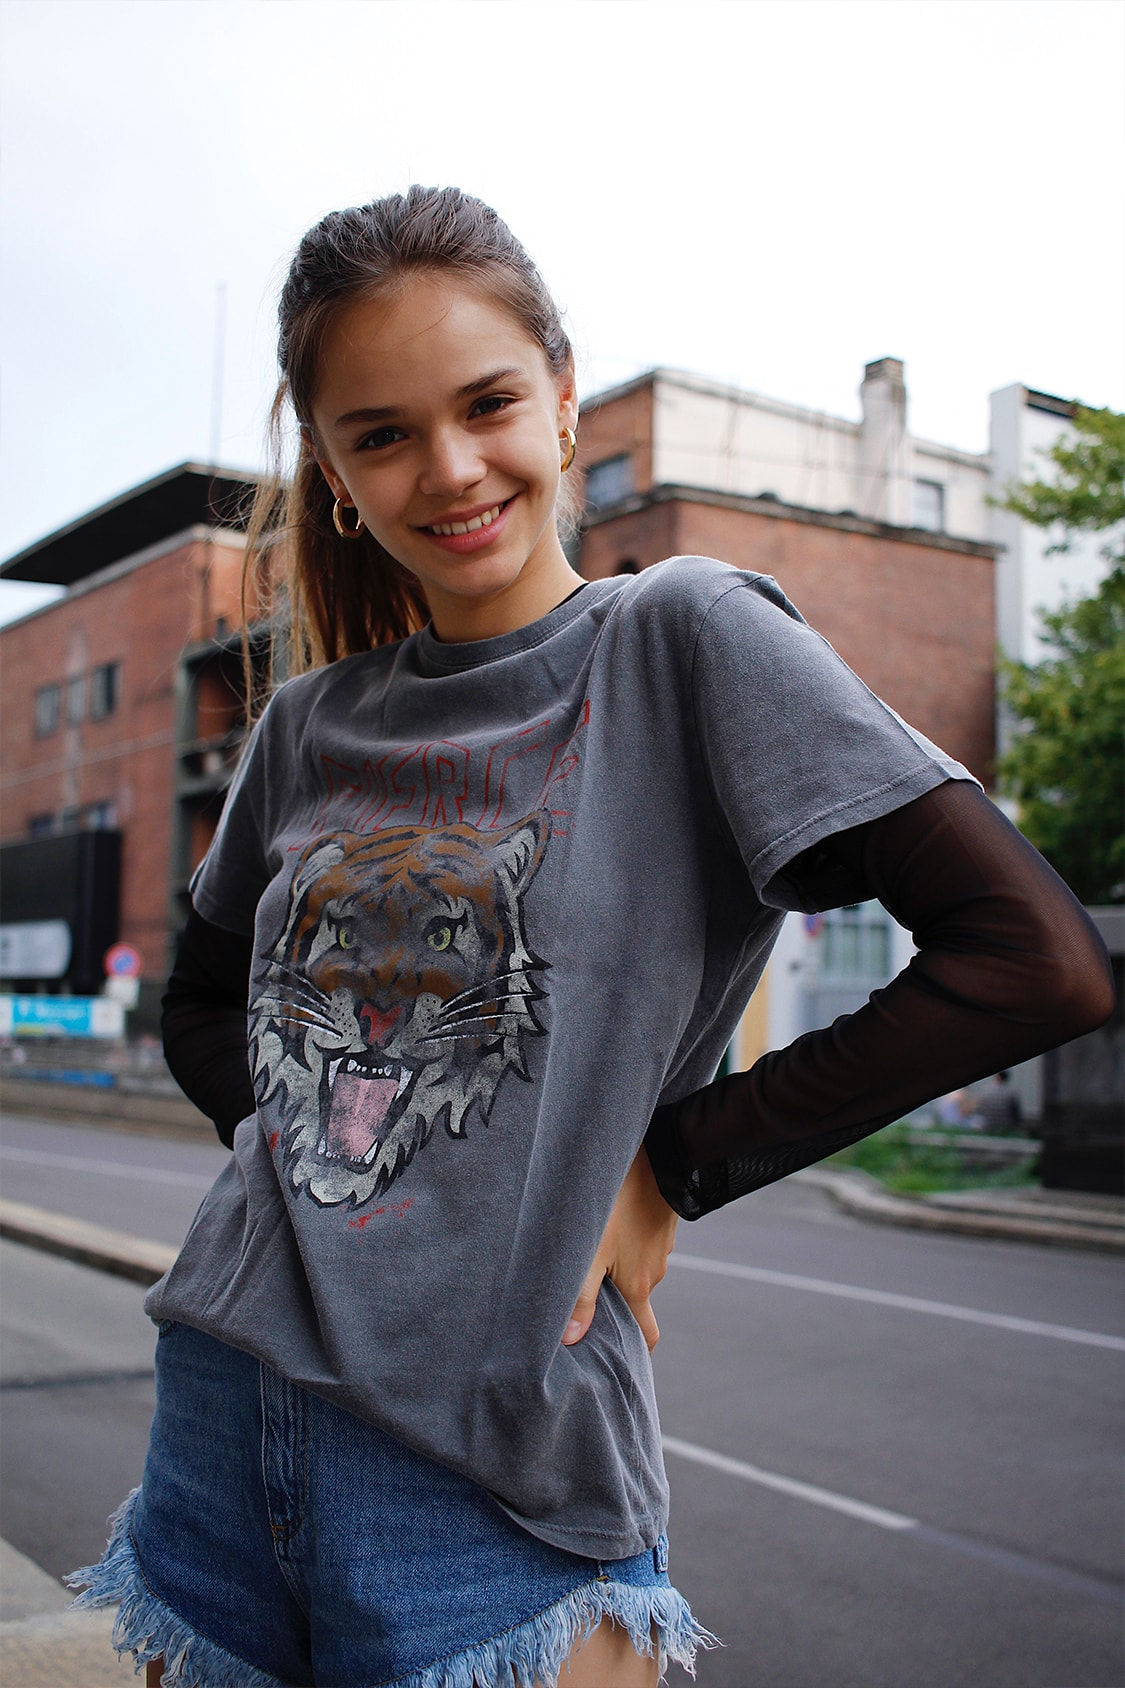 Tiger printed t-shirt